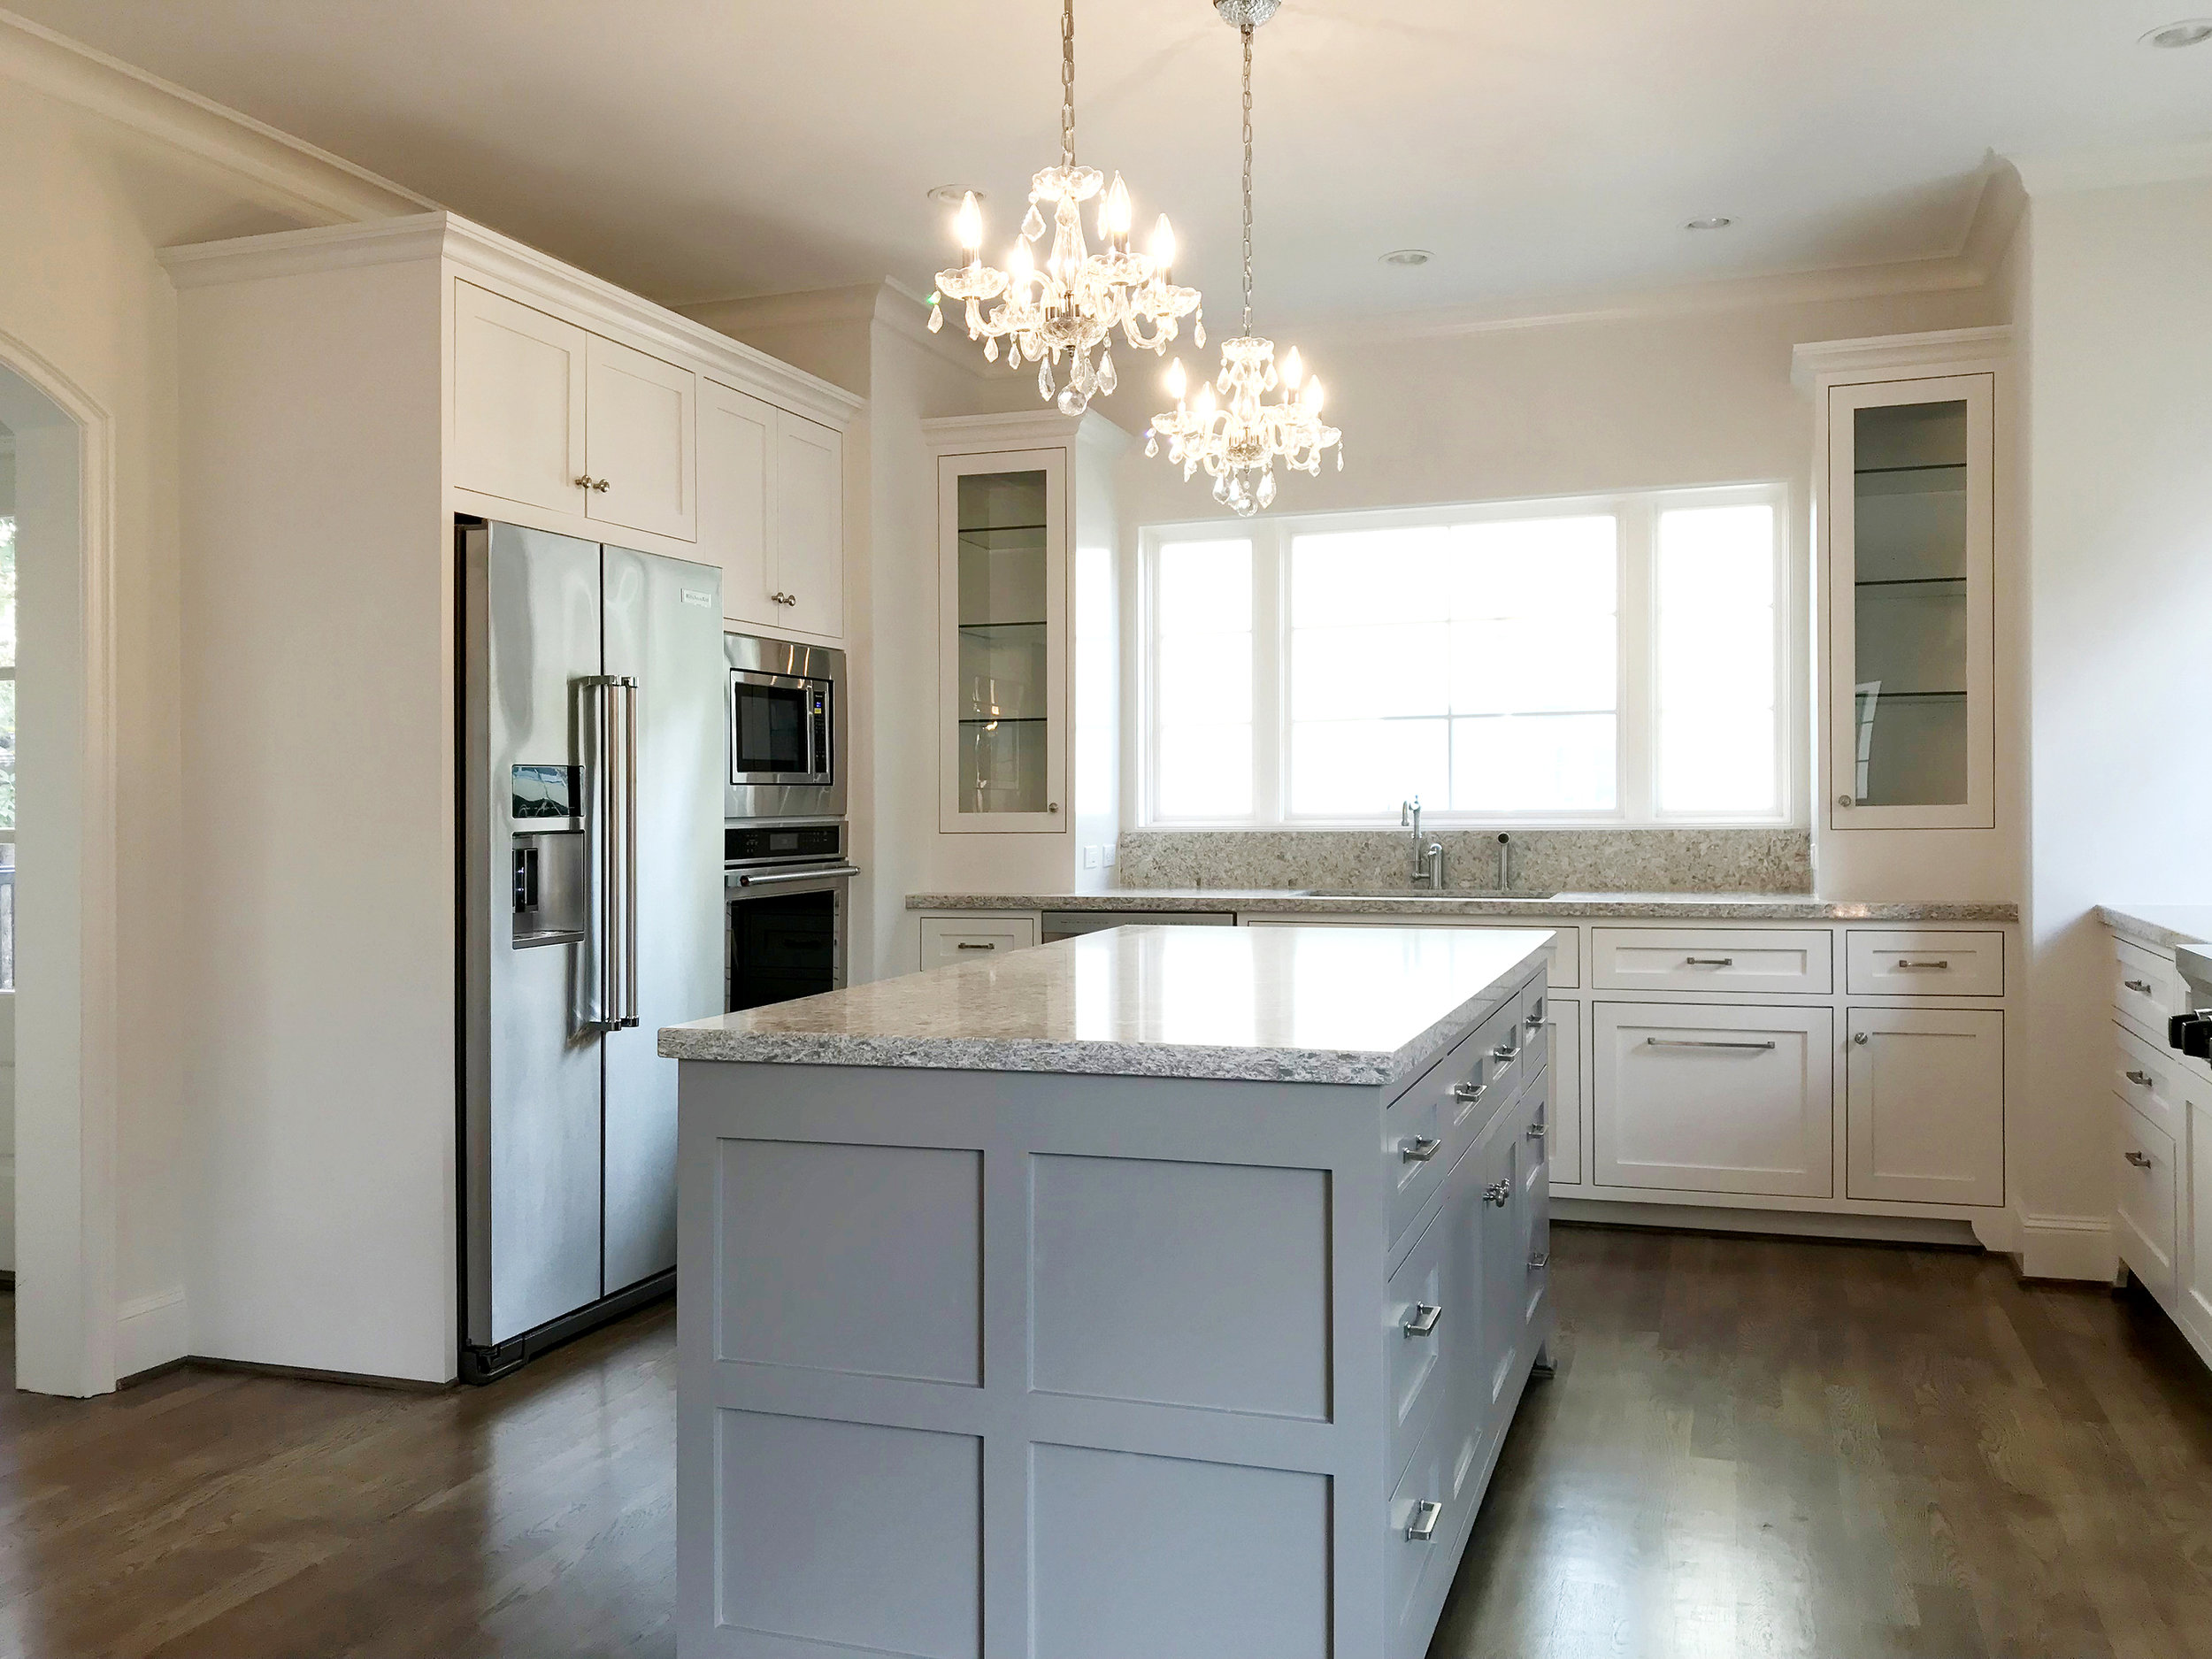 ALBERS CHANG_4210 LAW TOWNHOMES_KITCHEN_1.jpg